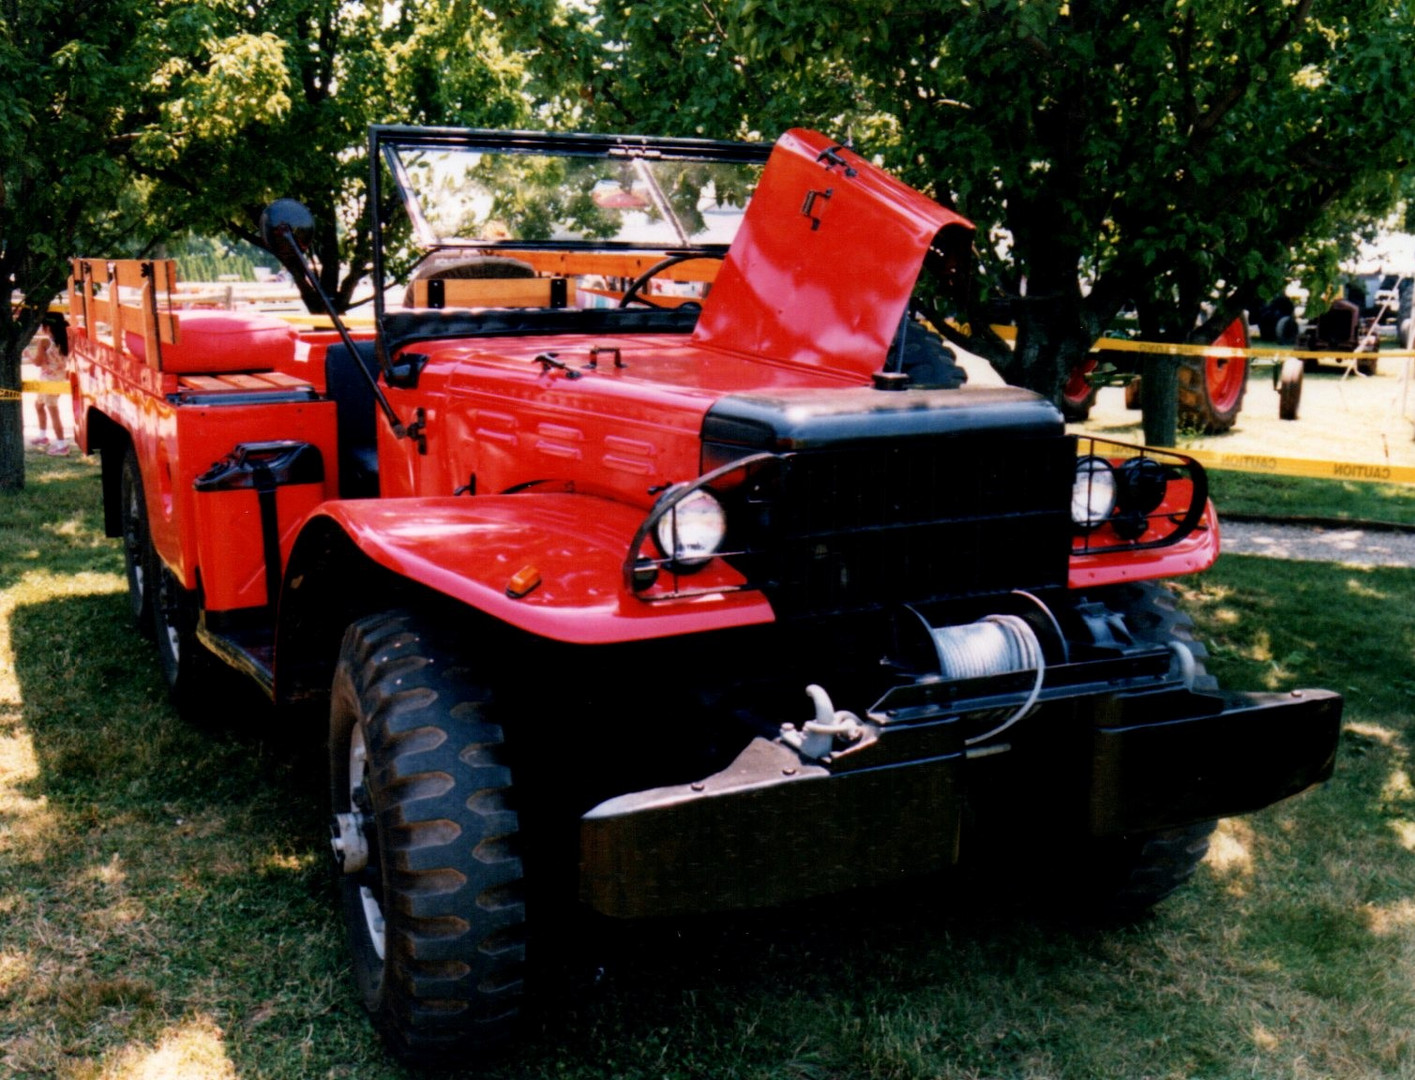 1943 Dodge WC63 weapons carrier